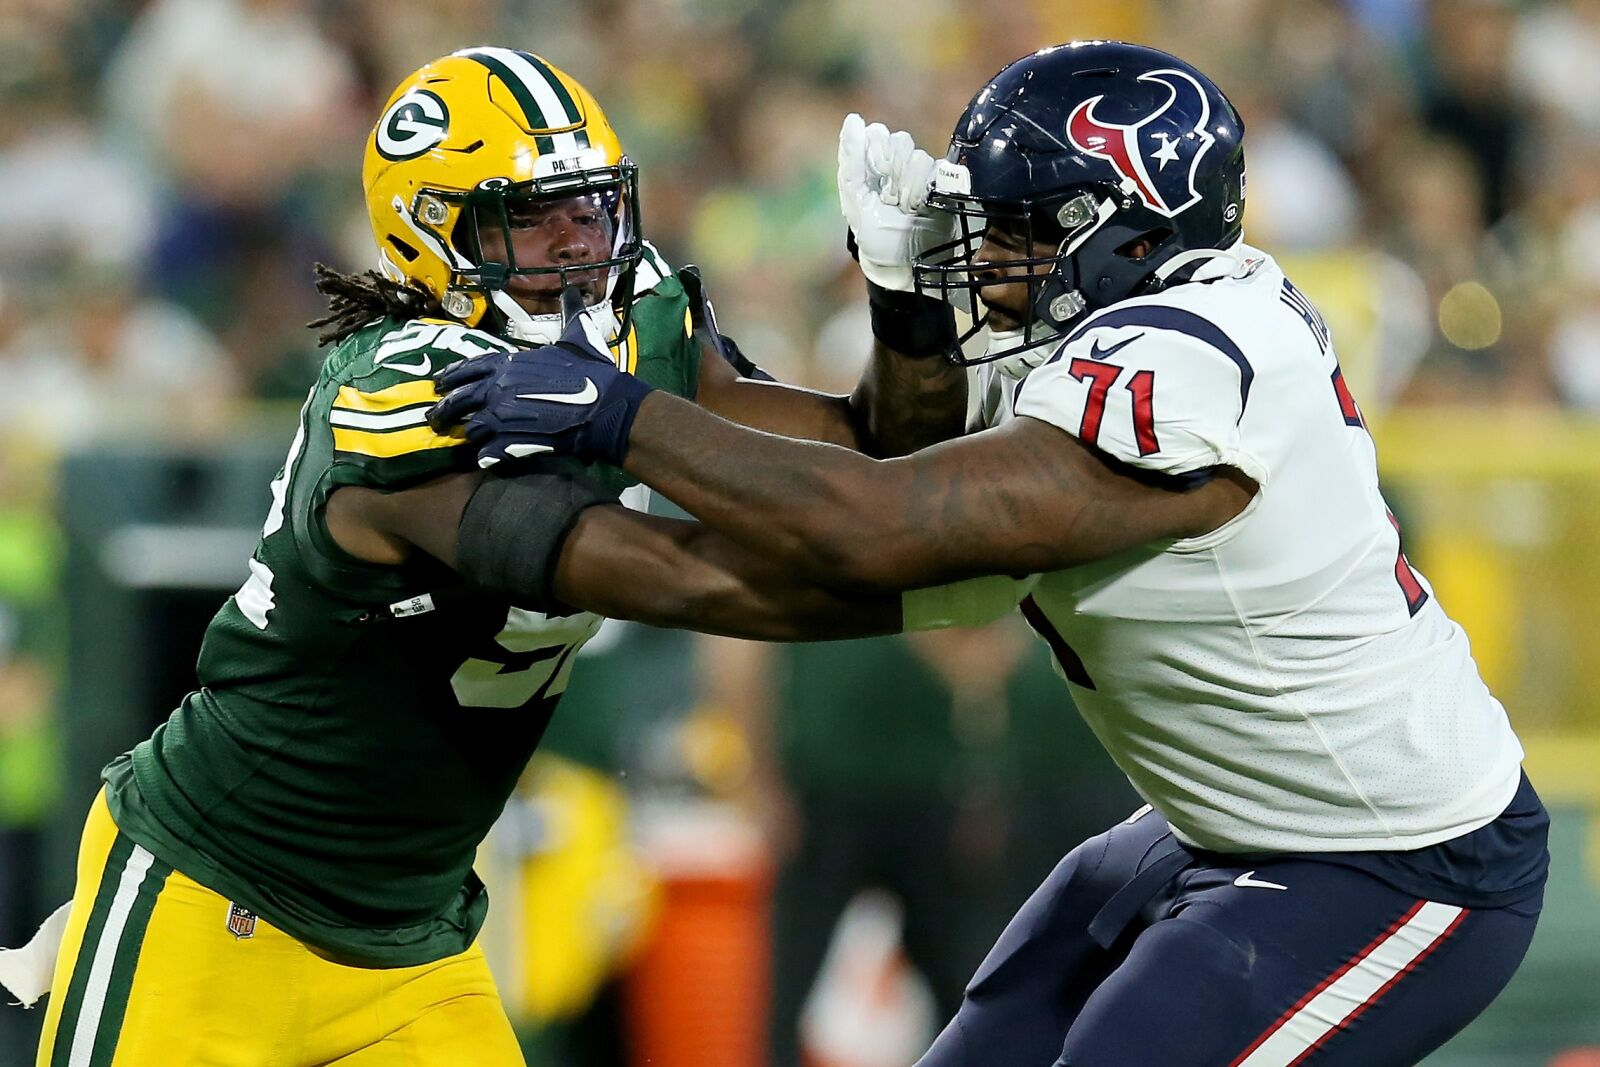 Should the Packers be concerned about Rashan Gary's lack of production?